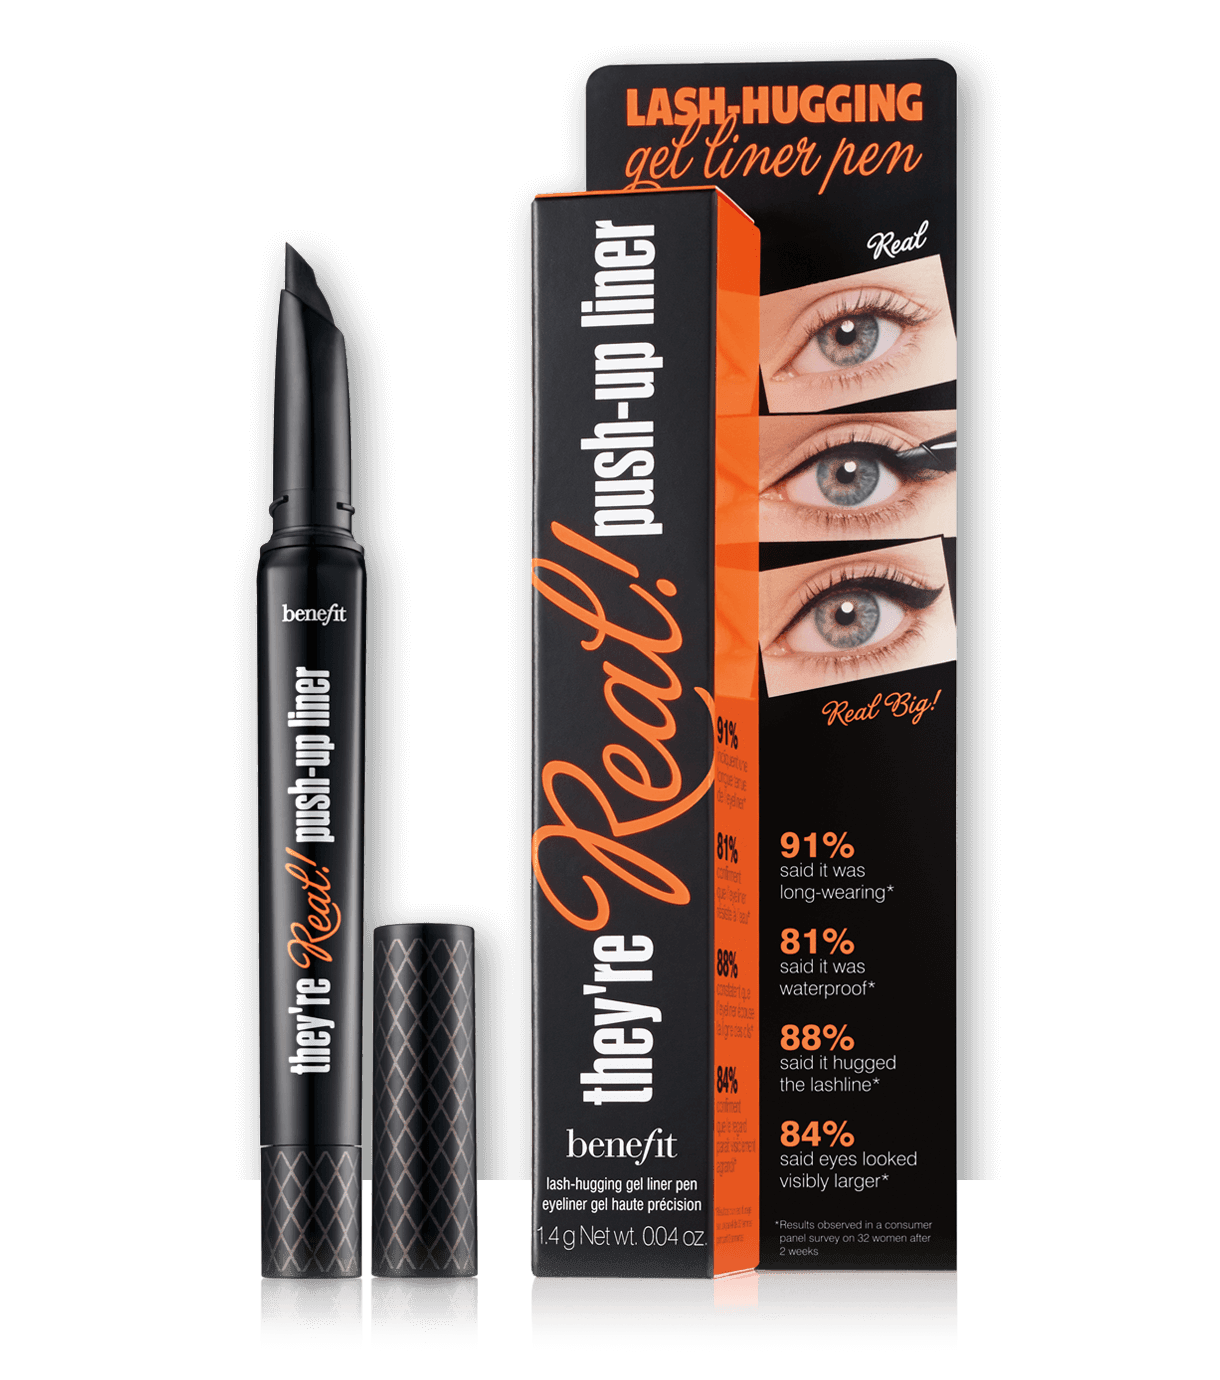 theyre-real-push-up-liner-hero